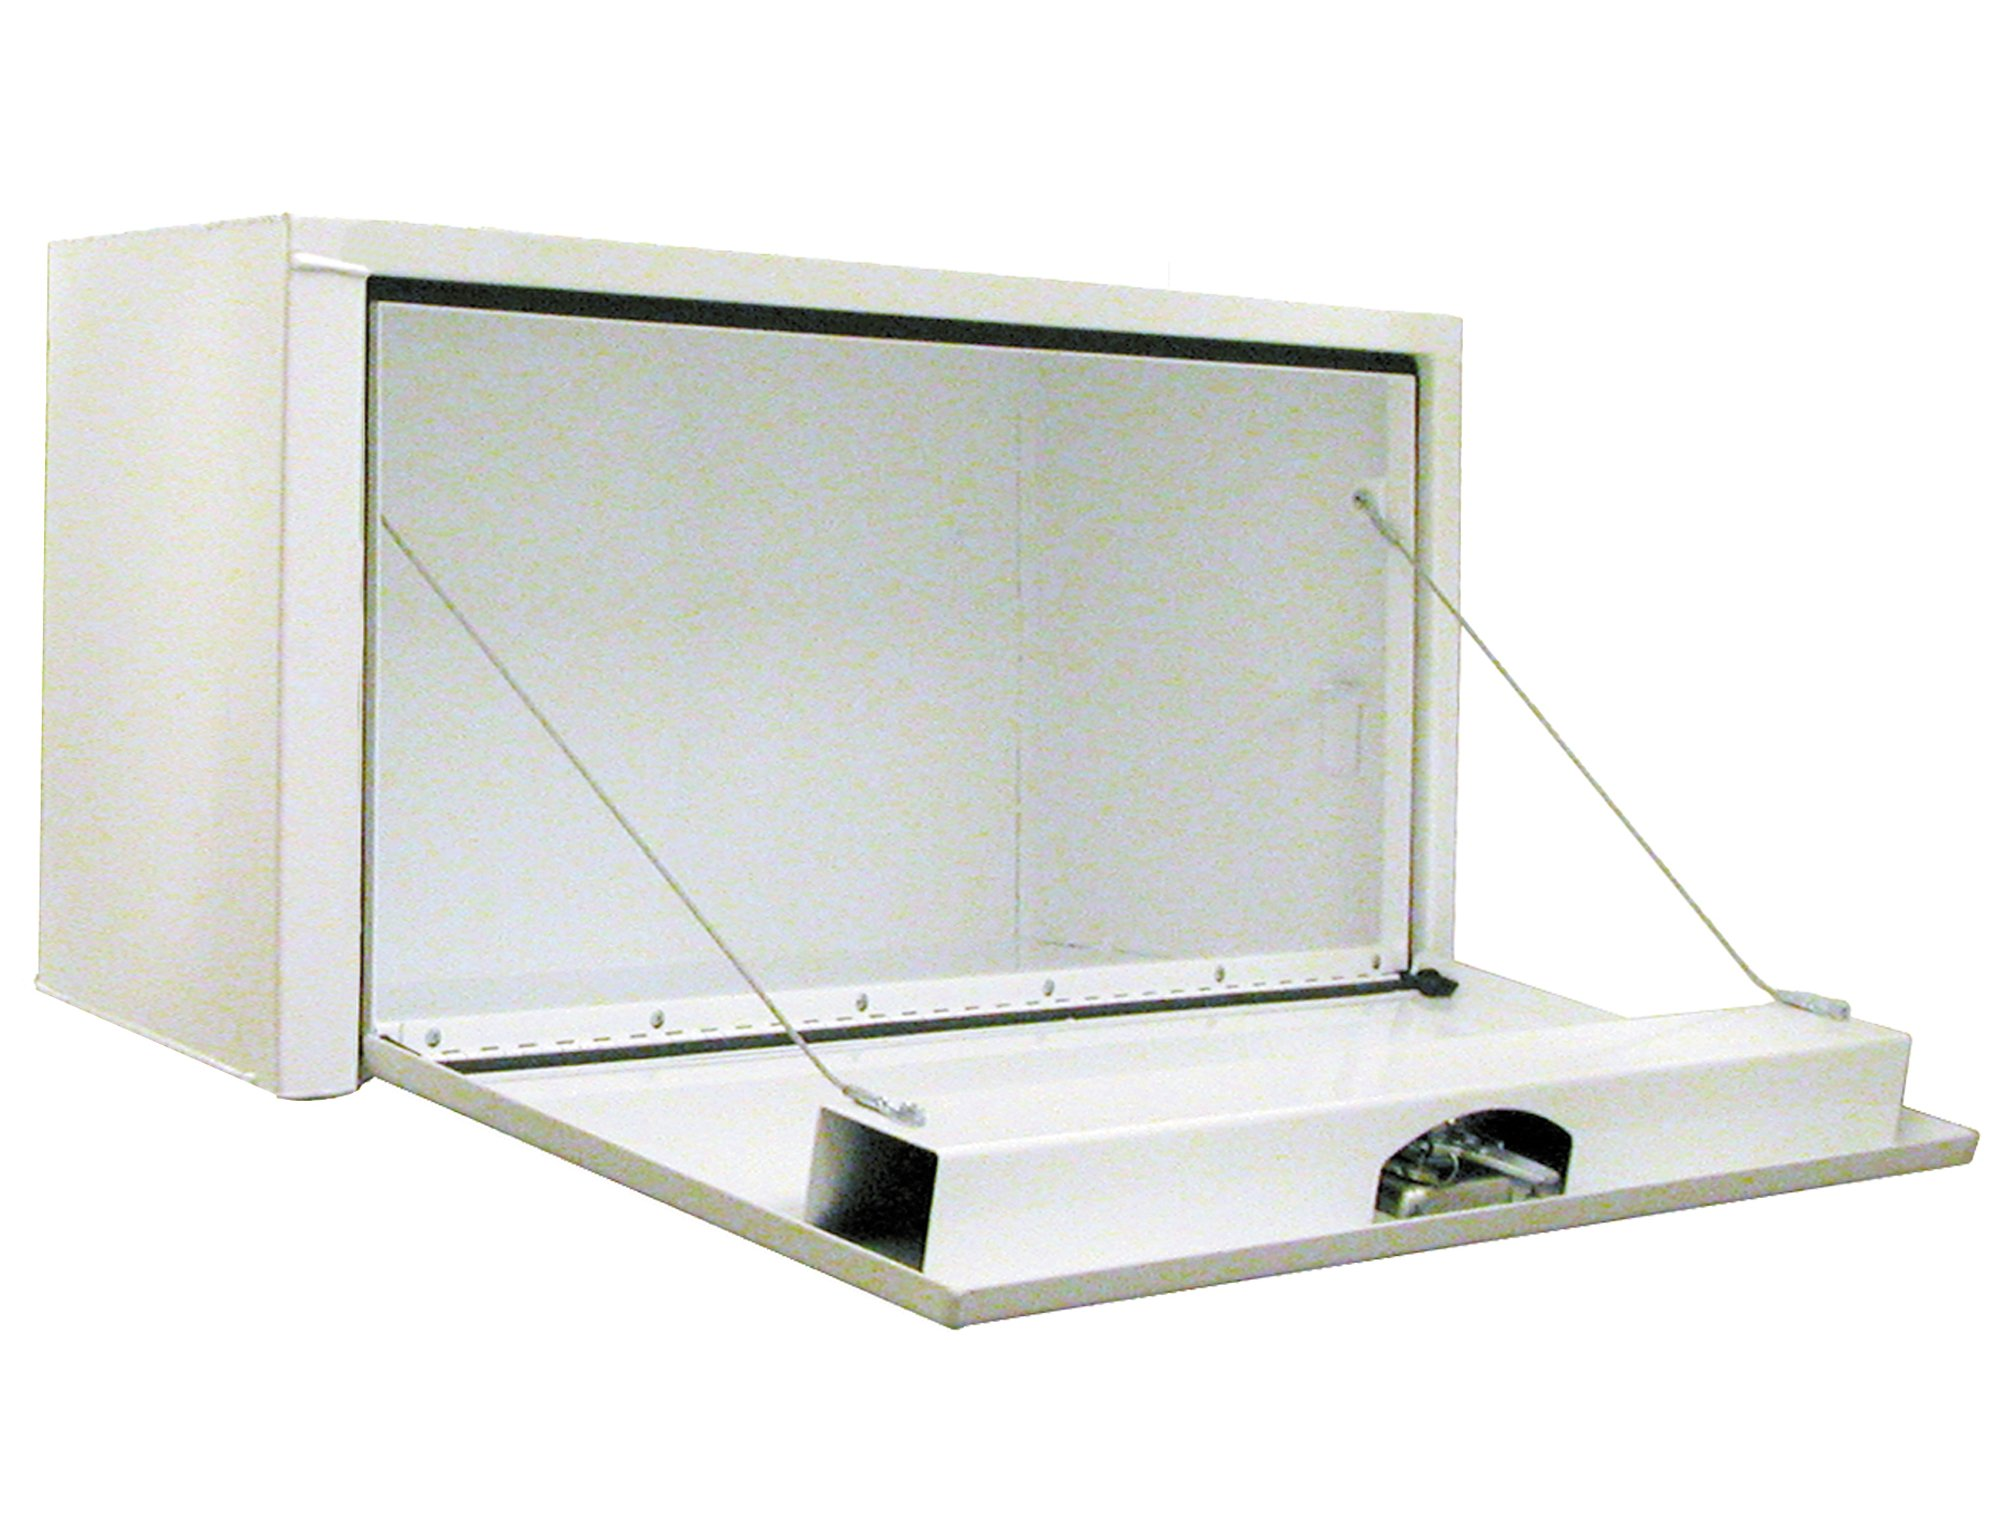 Buyers Products 1703405 White Steel Underbody Truck Box w/T-Handle Latch (14x16x36 Inch) by Buyers Products (Image #2)